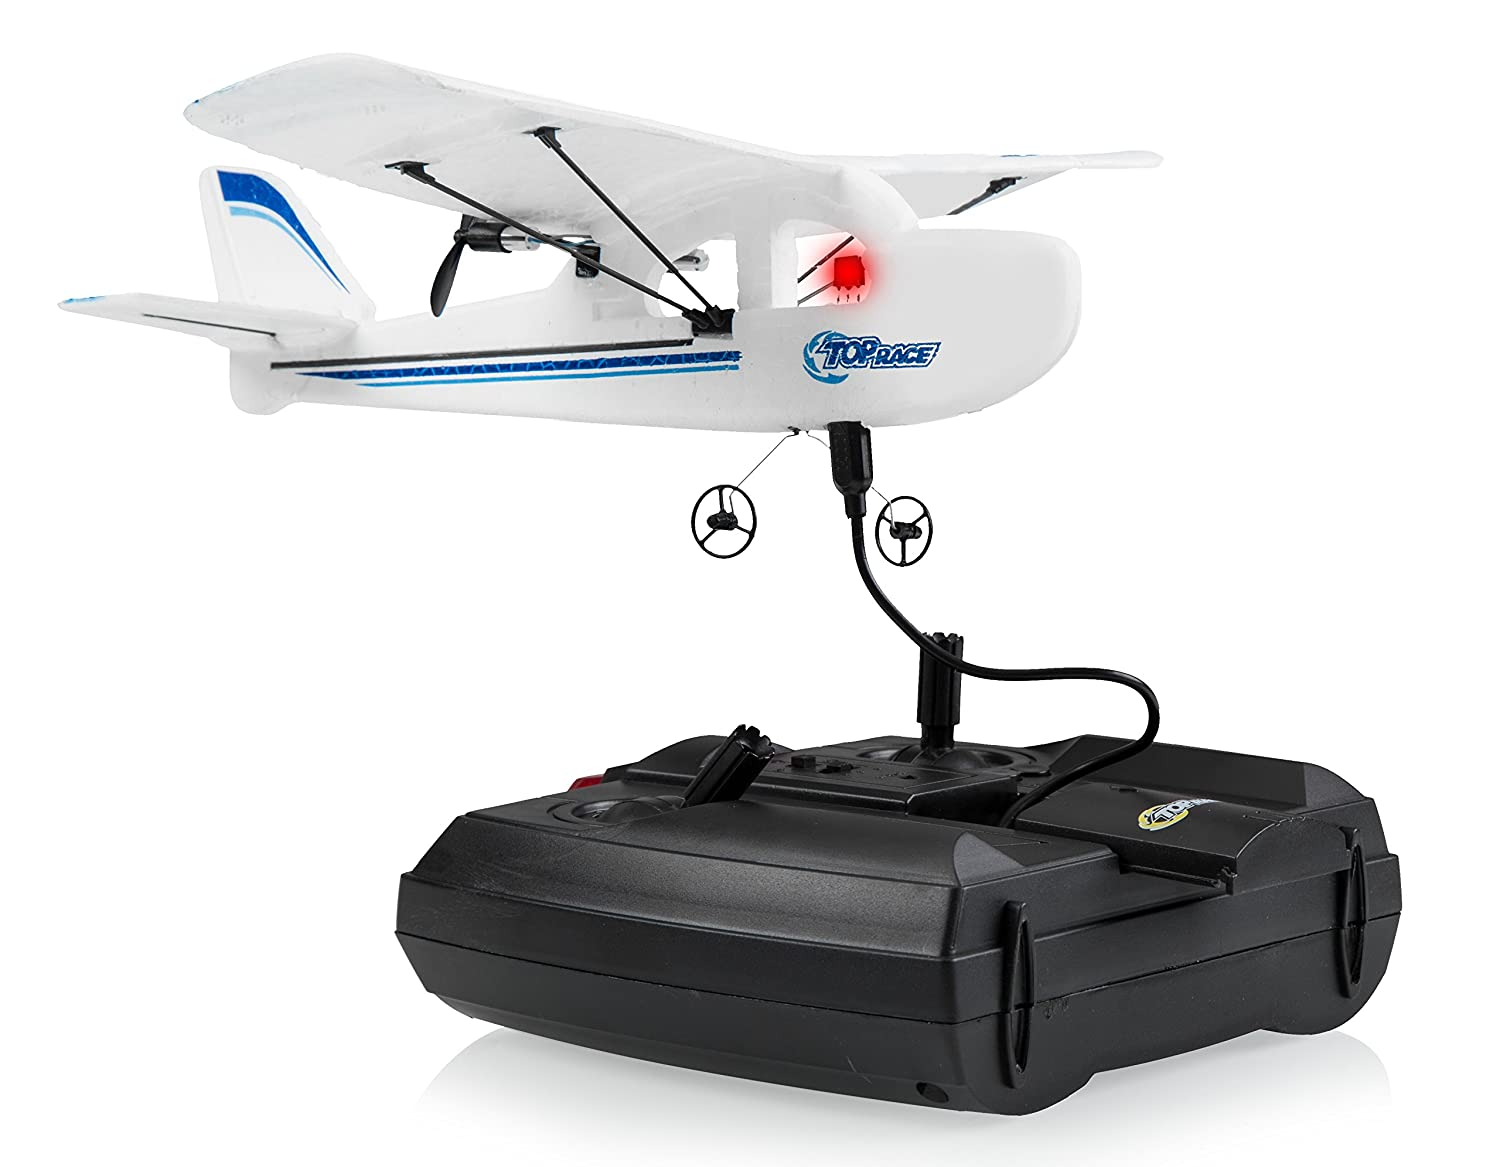 Top Race Cessna C185 Electric 2 Ch Infrared Remote Radio Control Circuit For Rc Planes Airplane Rtf Colors Vary Toys Games